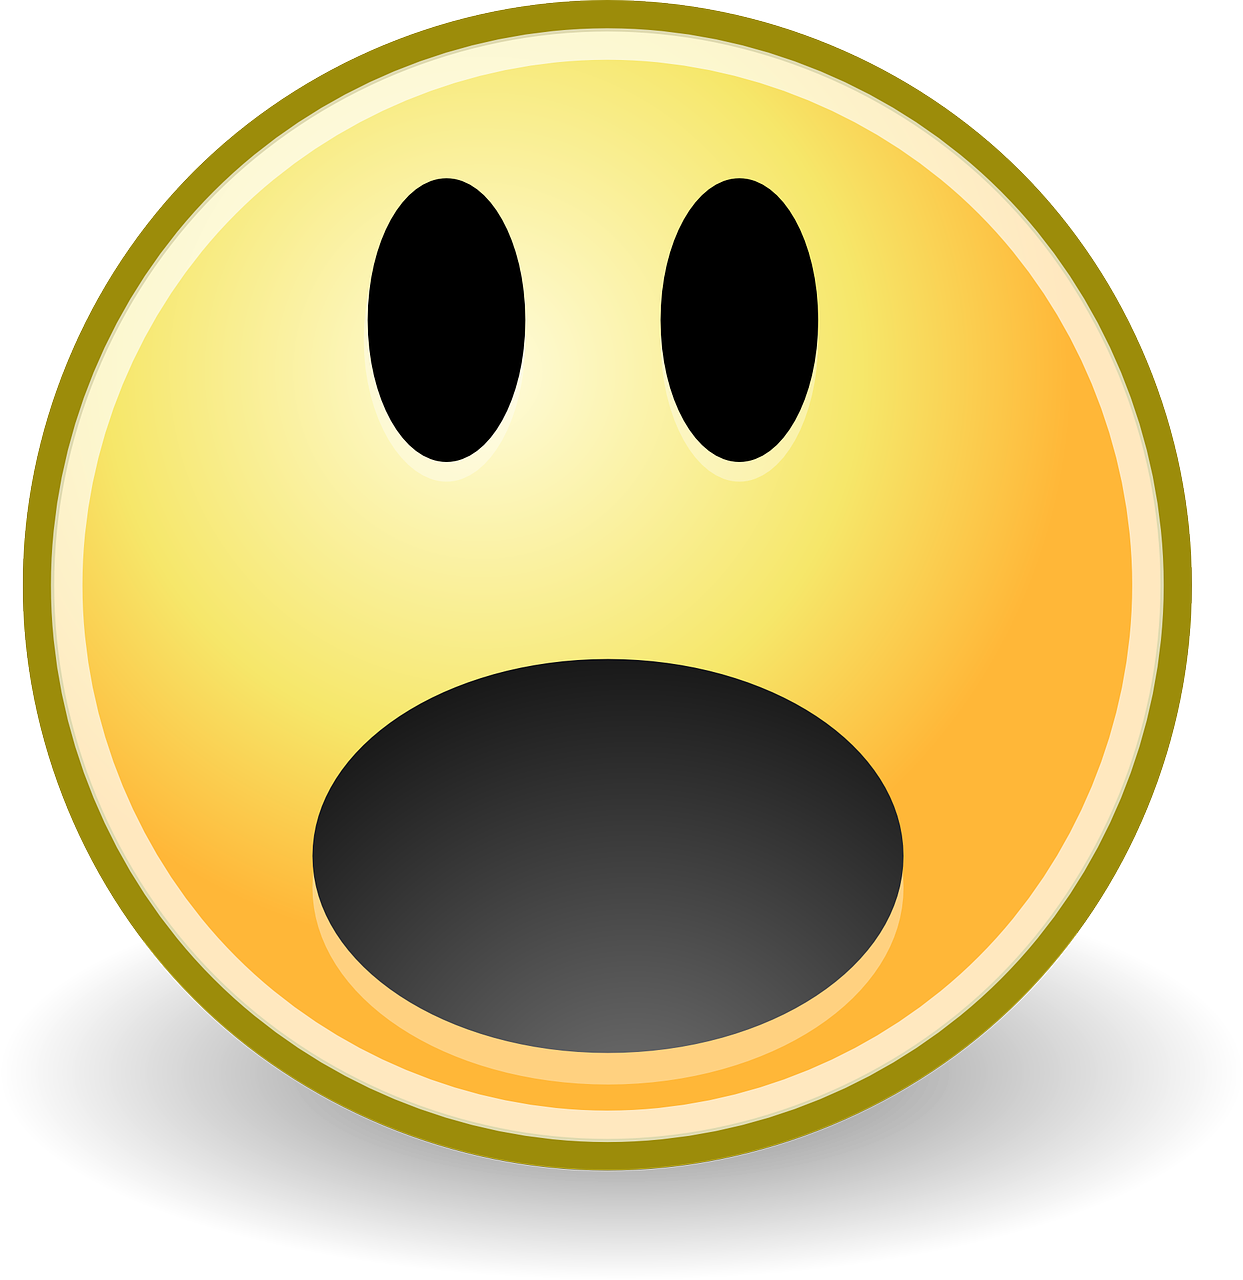 Surprise Smiley Oh Fear Scare PNG | Picpng